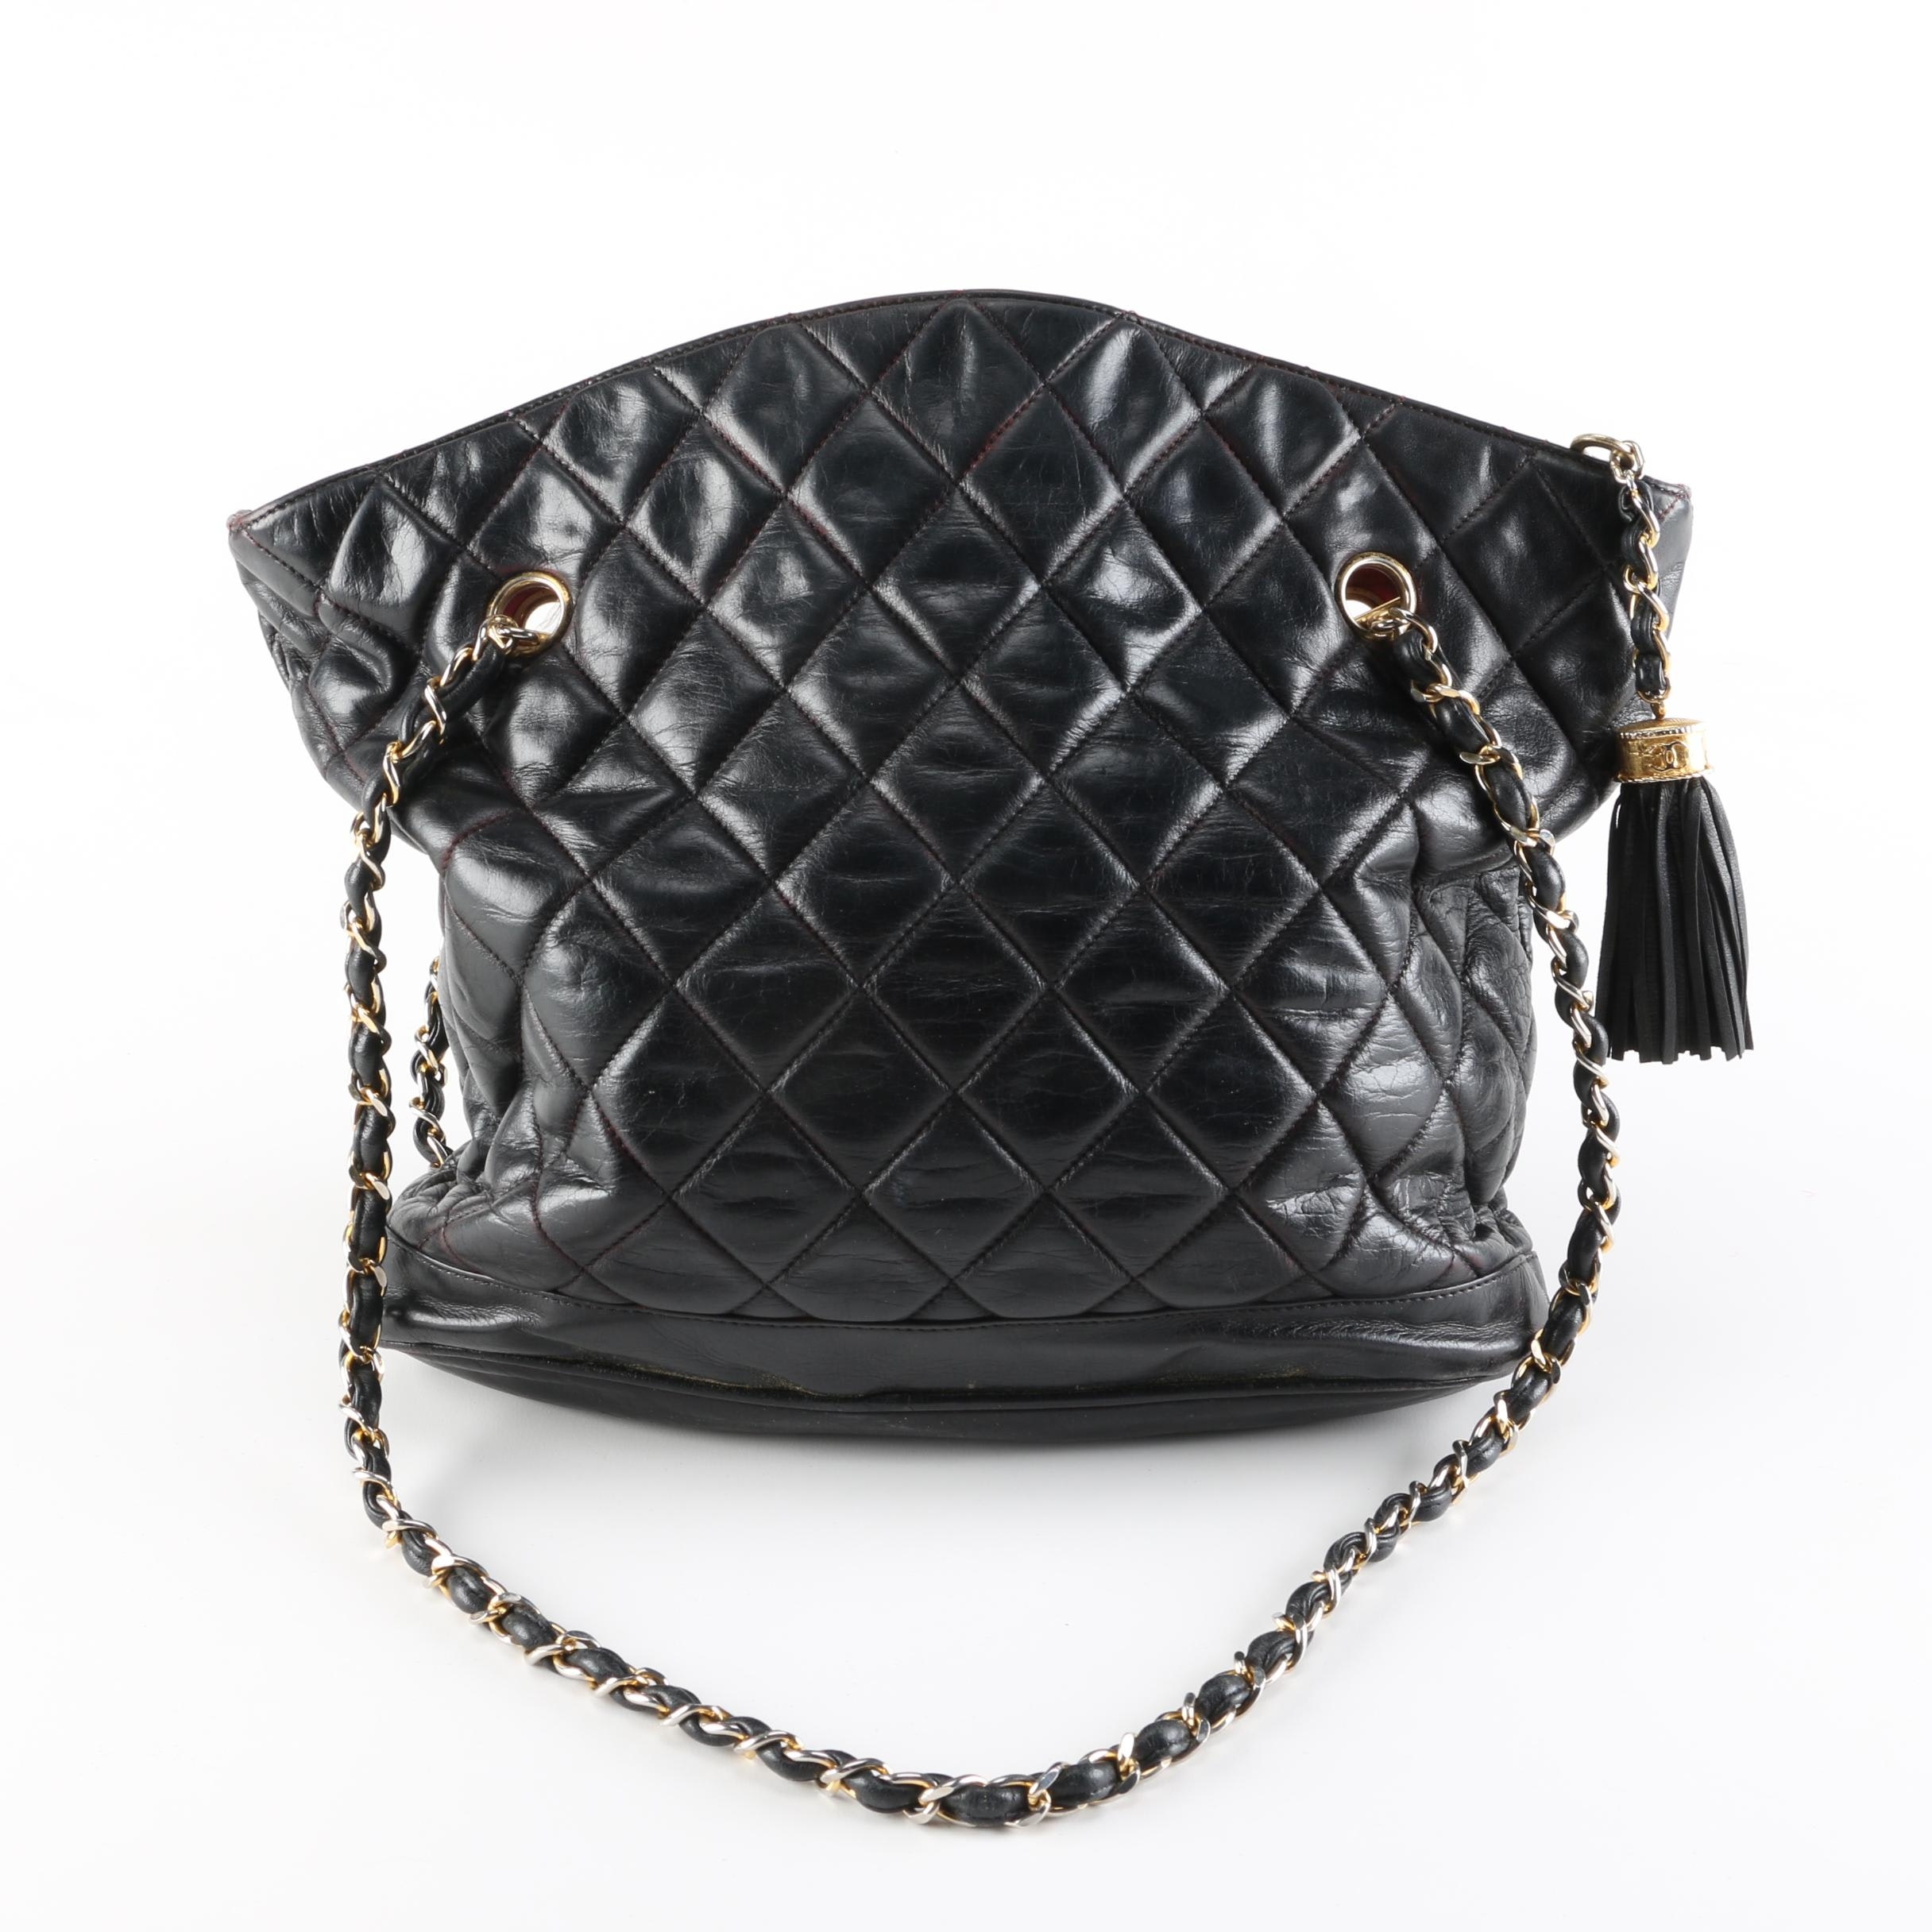 Vintage Chanel Black Leather Quilted Handbag